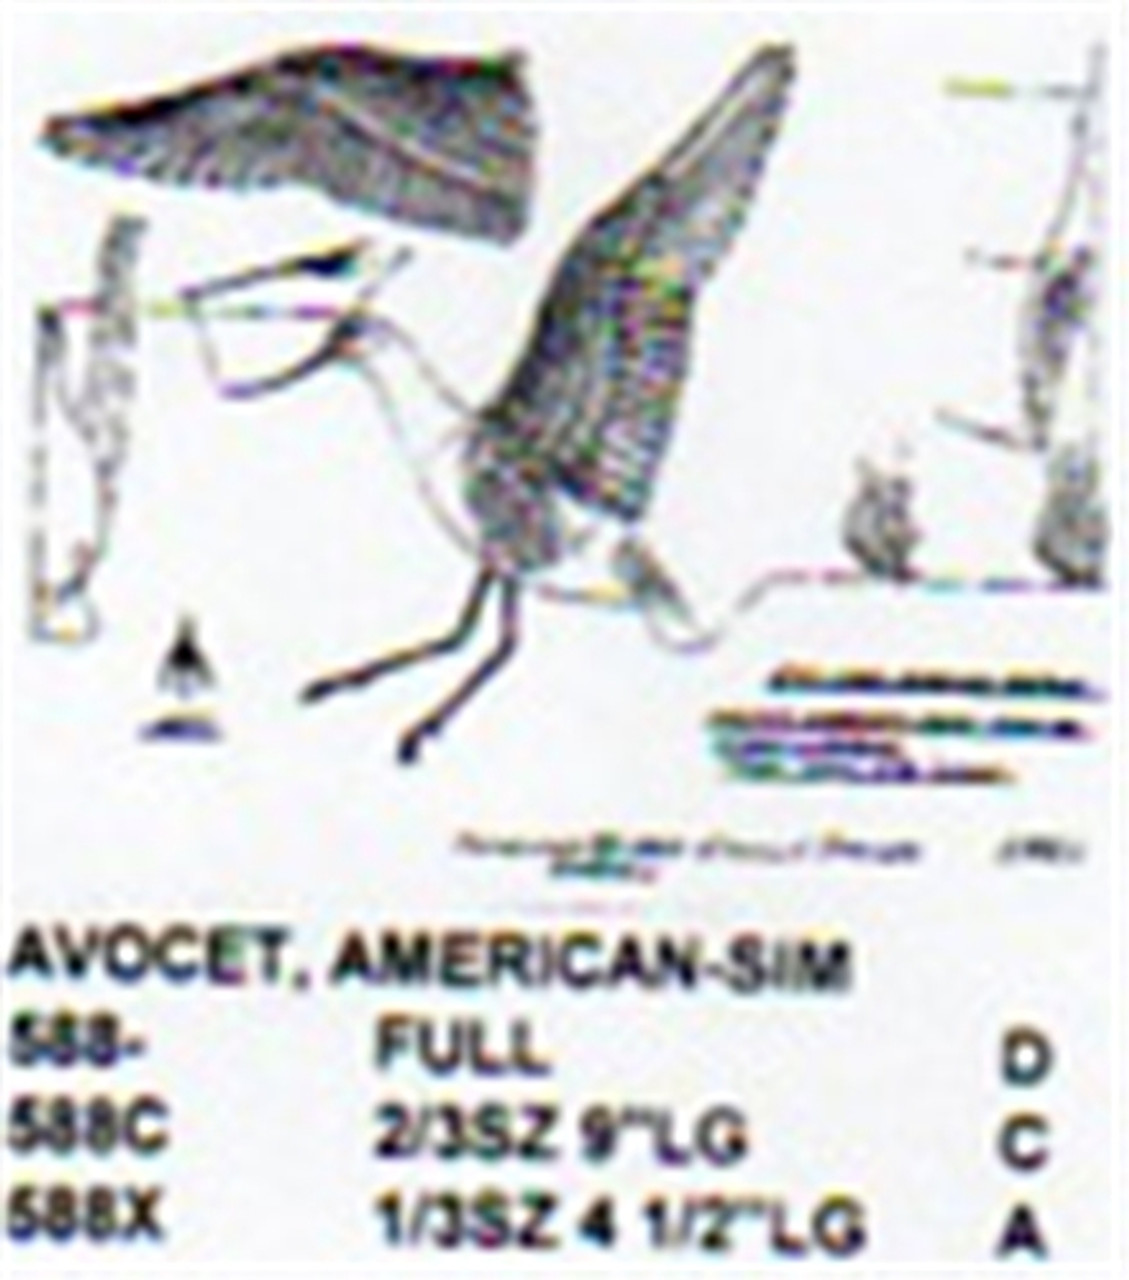 American Avocet Landing Carving Pattern showing the shorebird in a flying/landing position.